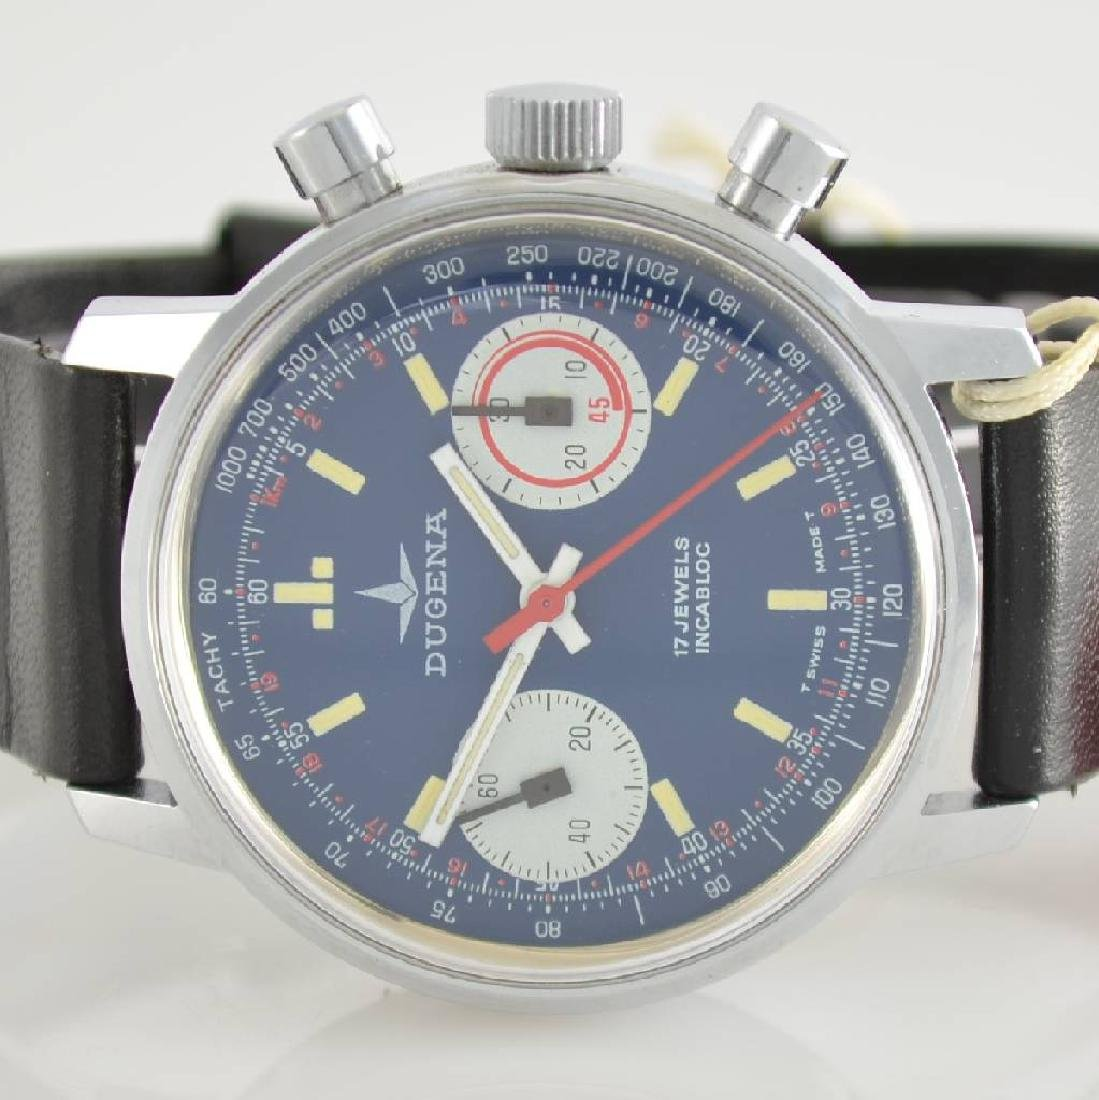 DUGENA unworn gents wristwatch with chronograph - 2